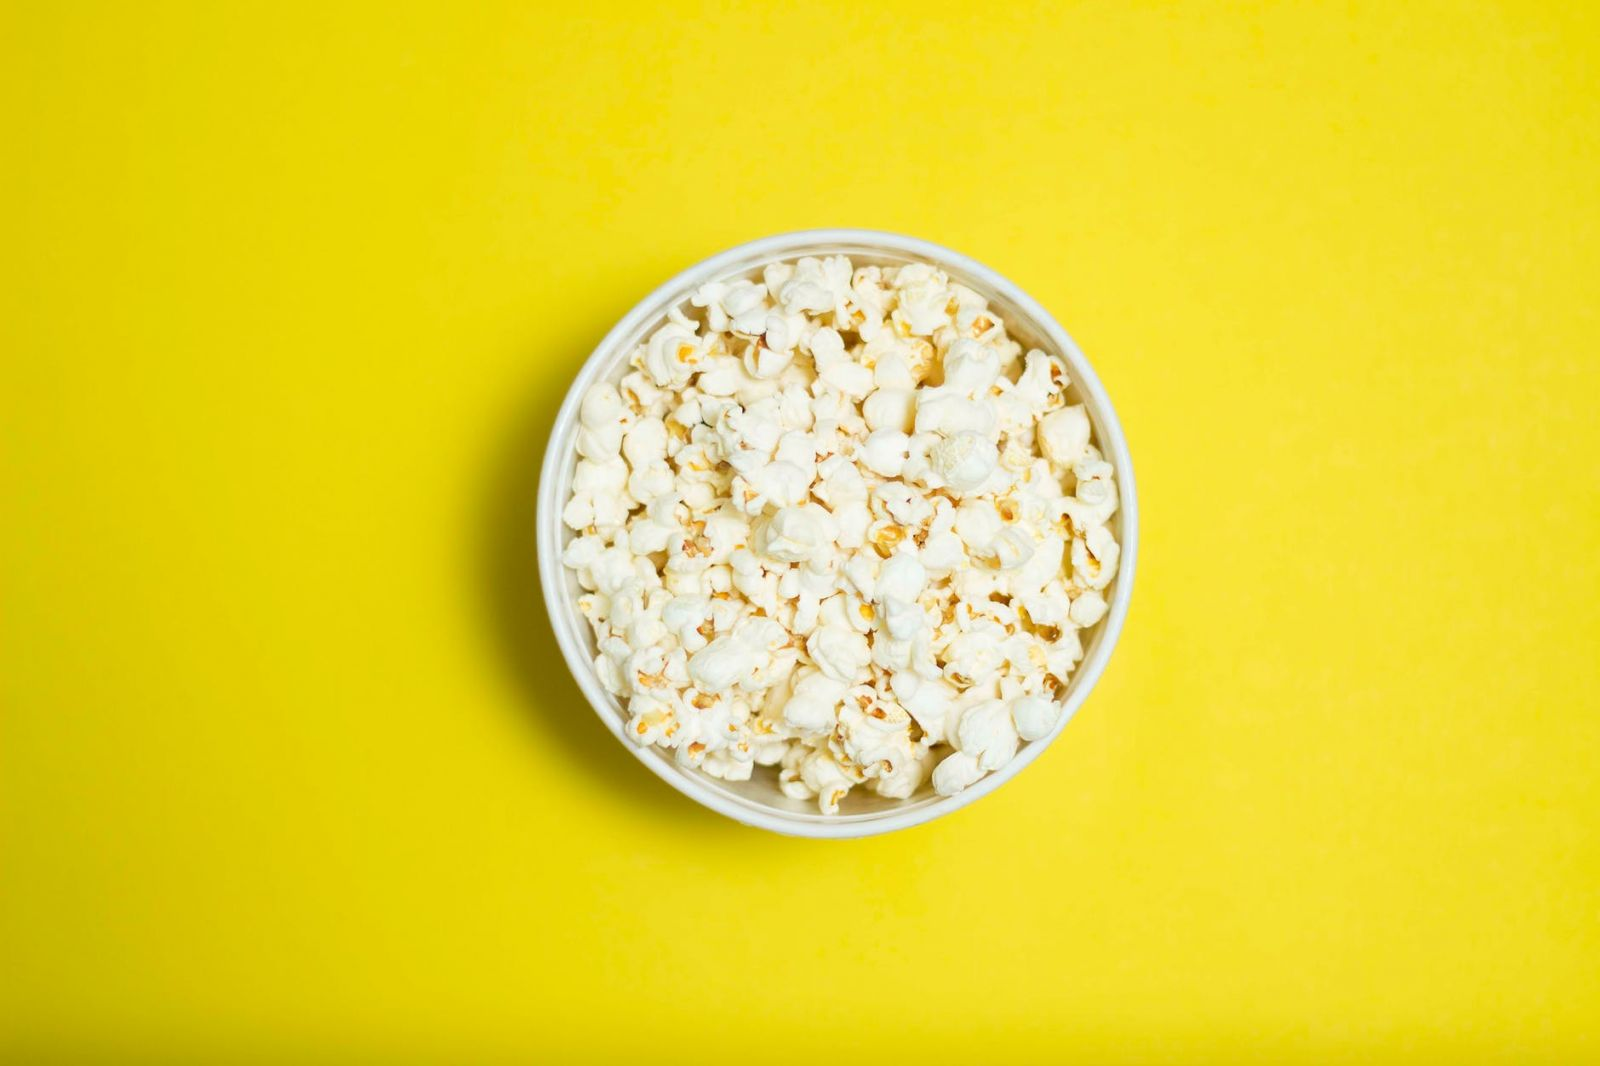 Diacetyl is most commonly associated with movie theatre butter.